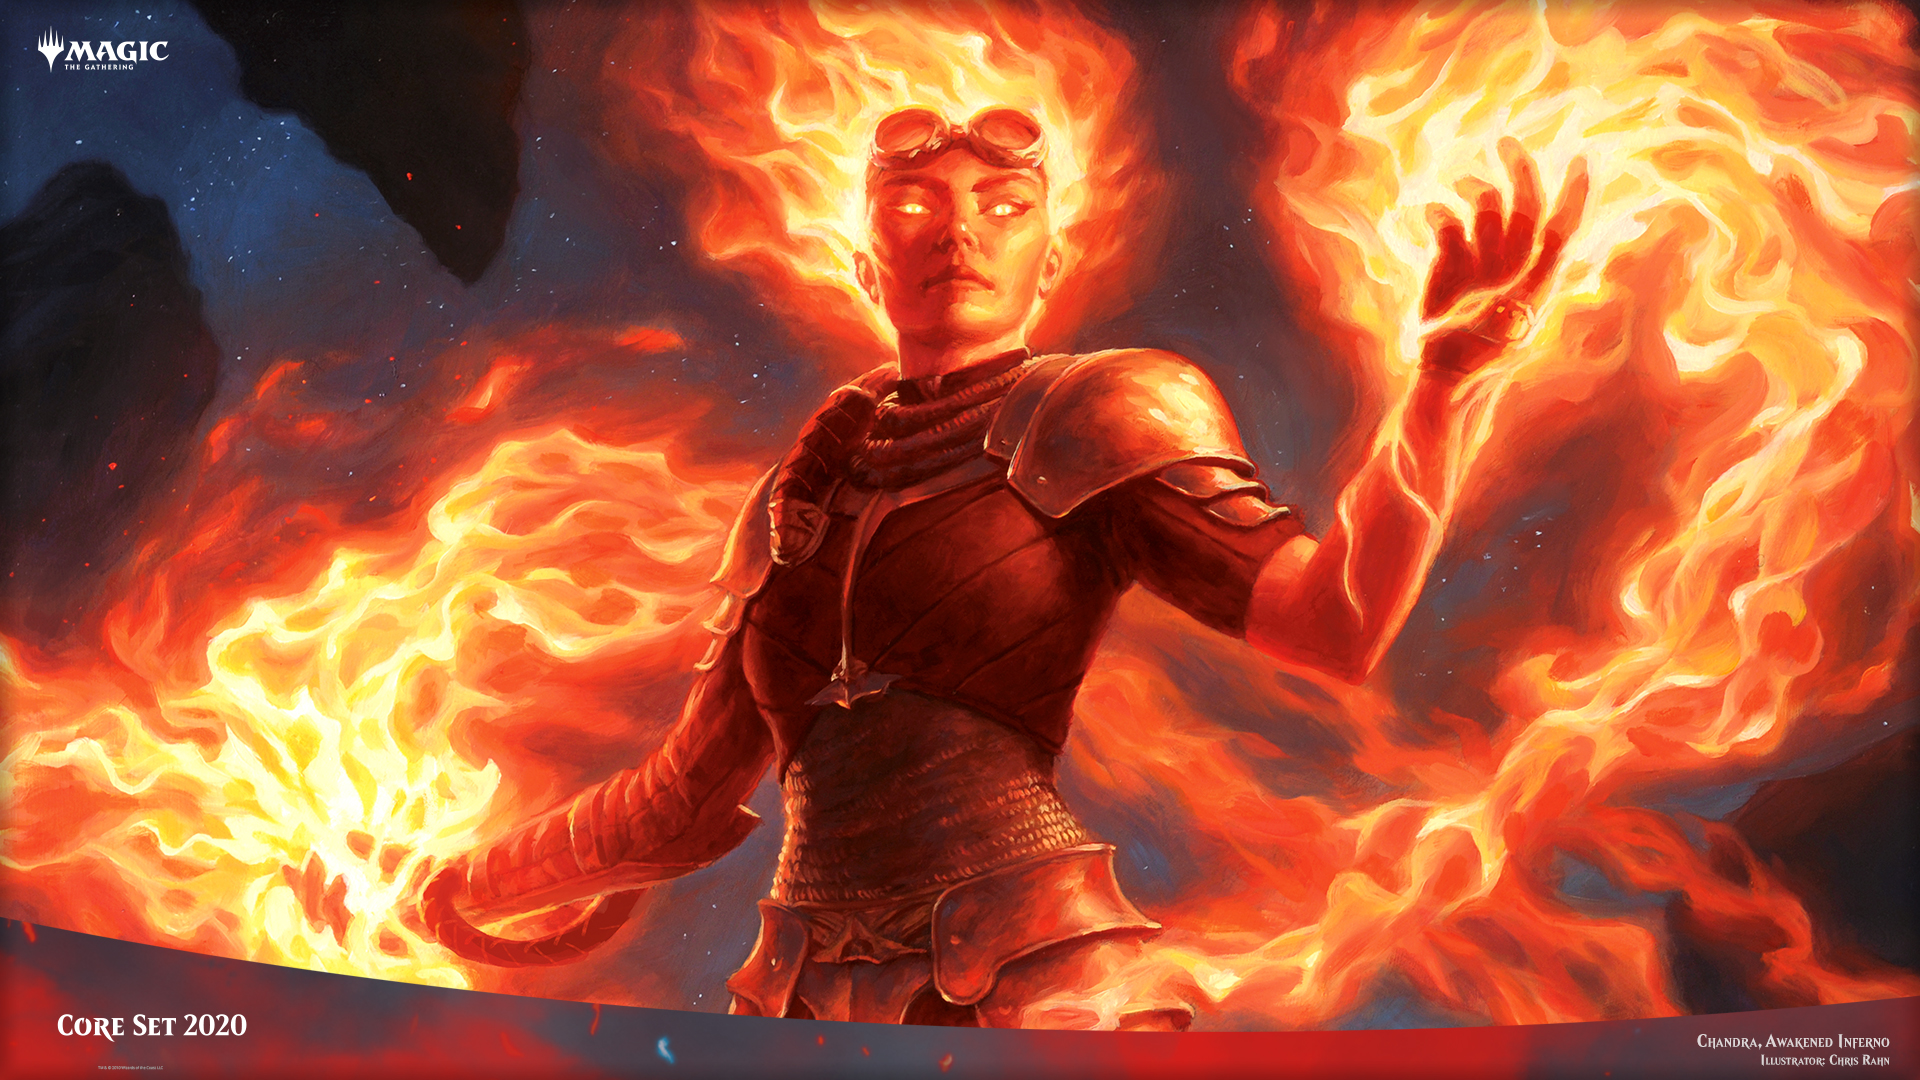 Magic The Gathering Exklusive Preview Karte Zum Core Set 2020